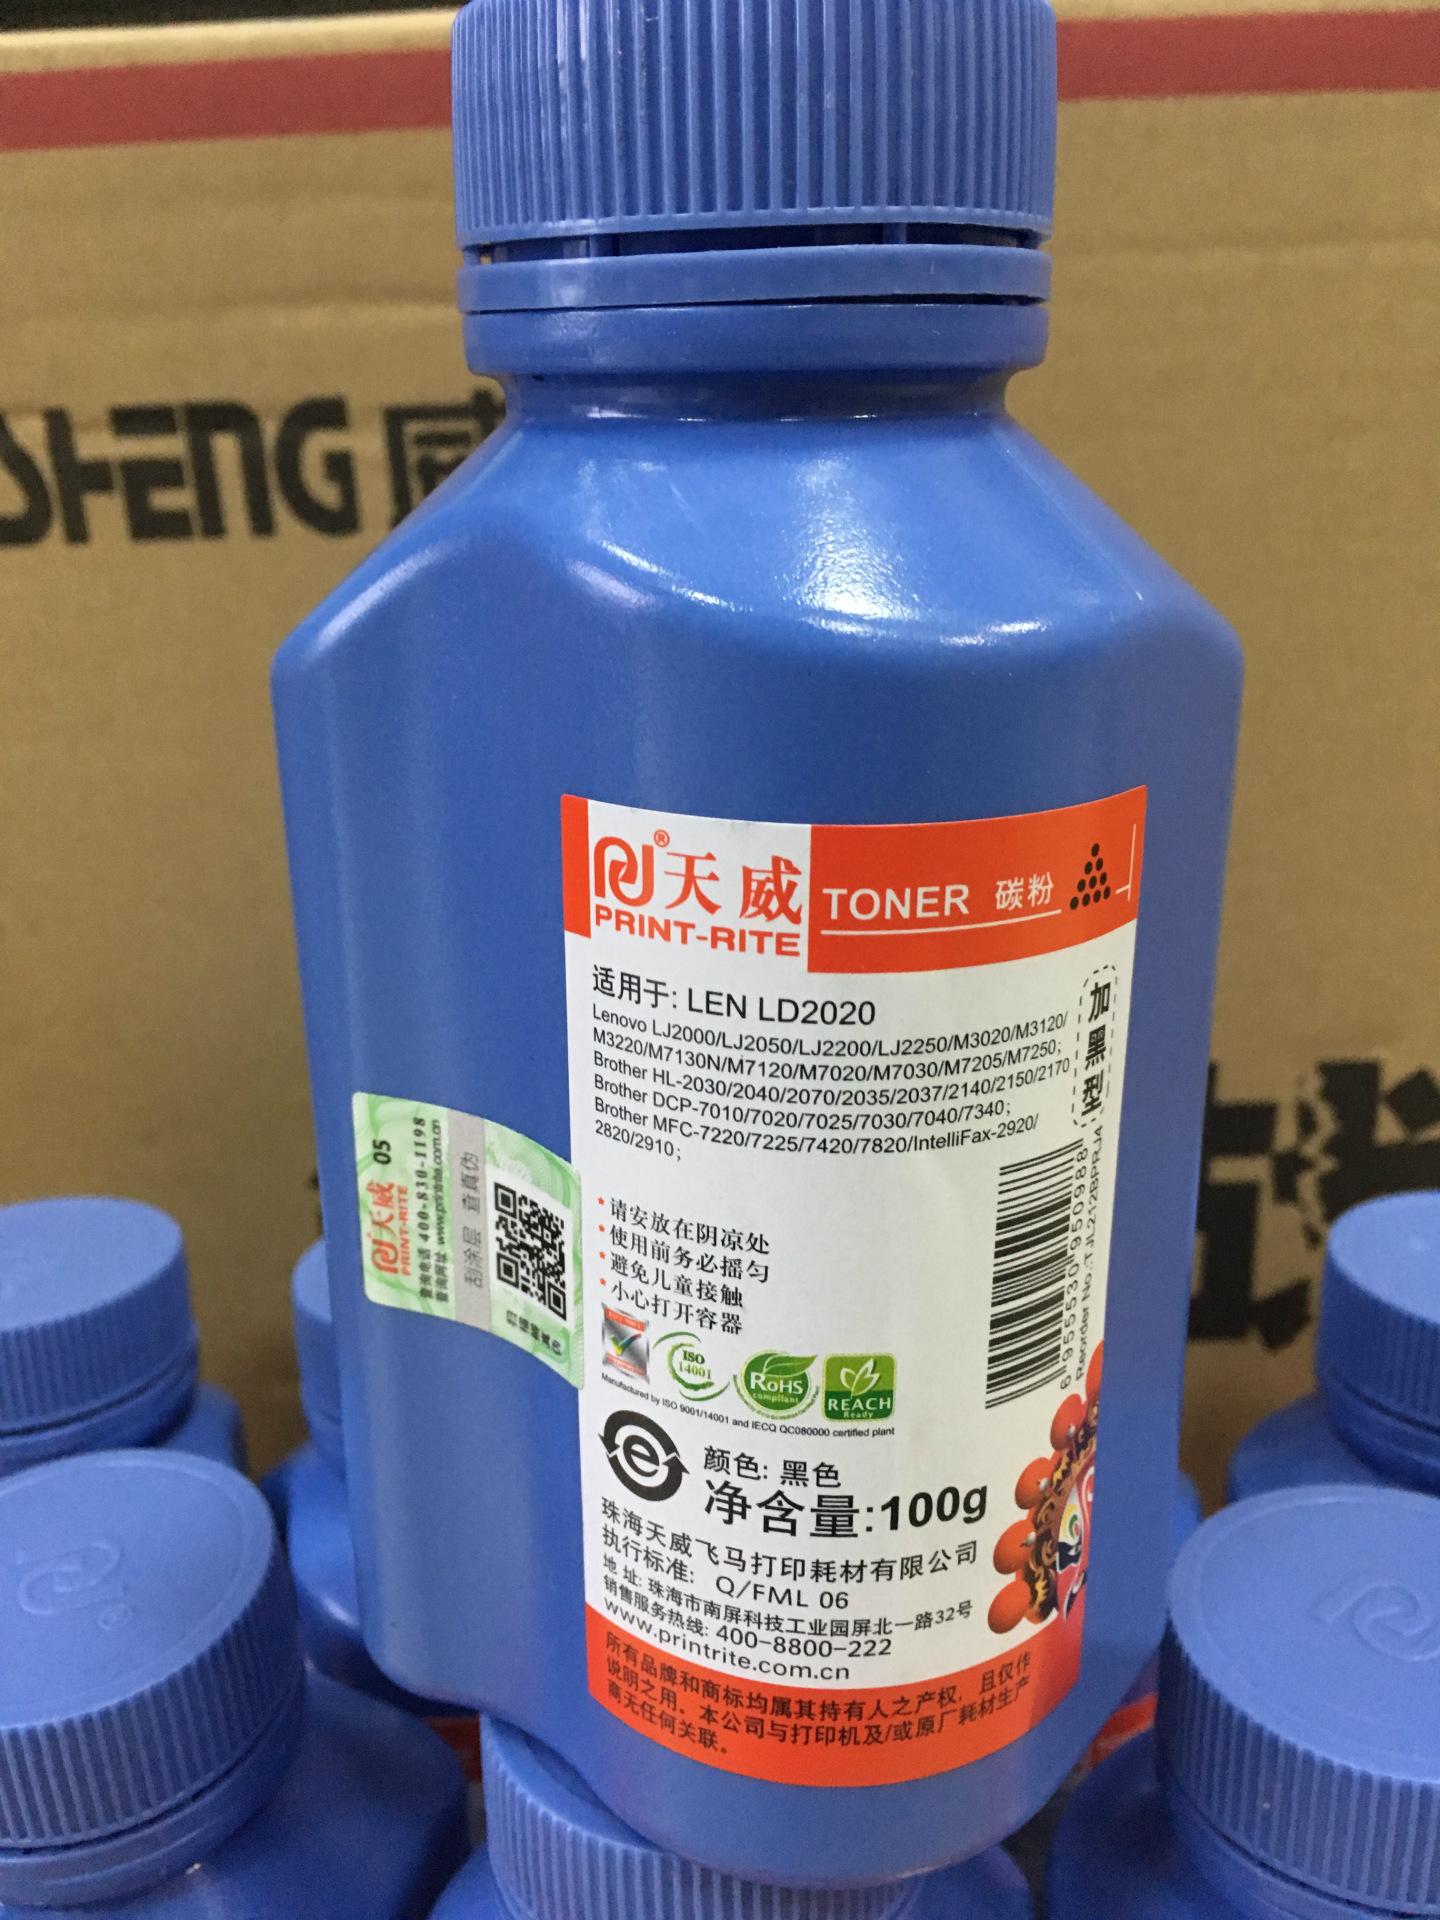 Bột than   Tianwei brother LD2020 general carbon powder apply/lenovo 2050 7030 7010 7420